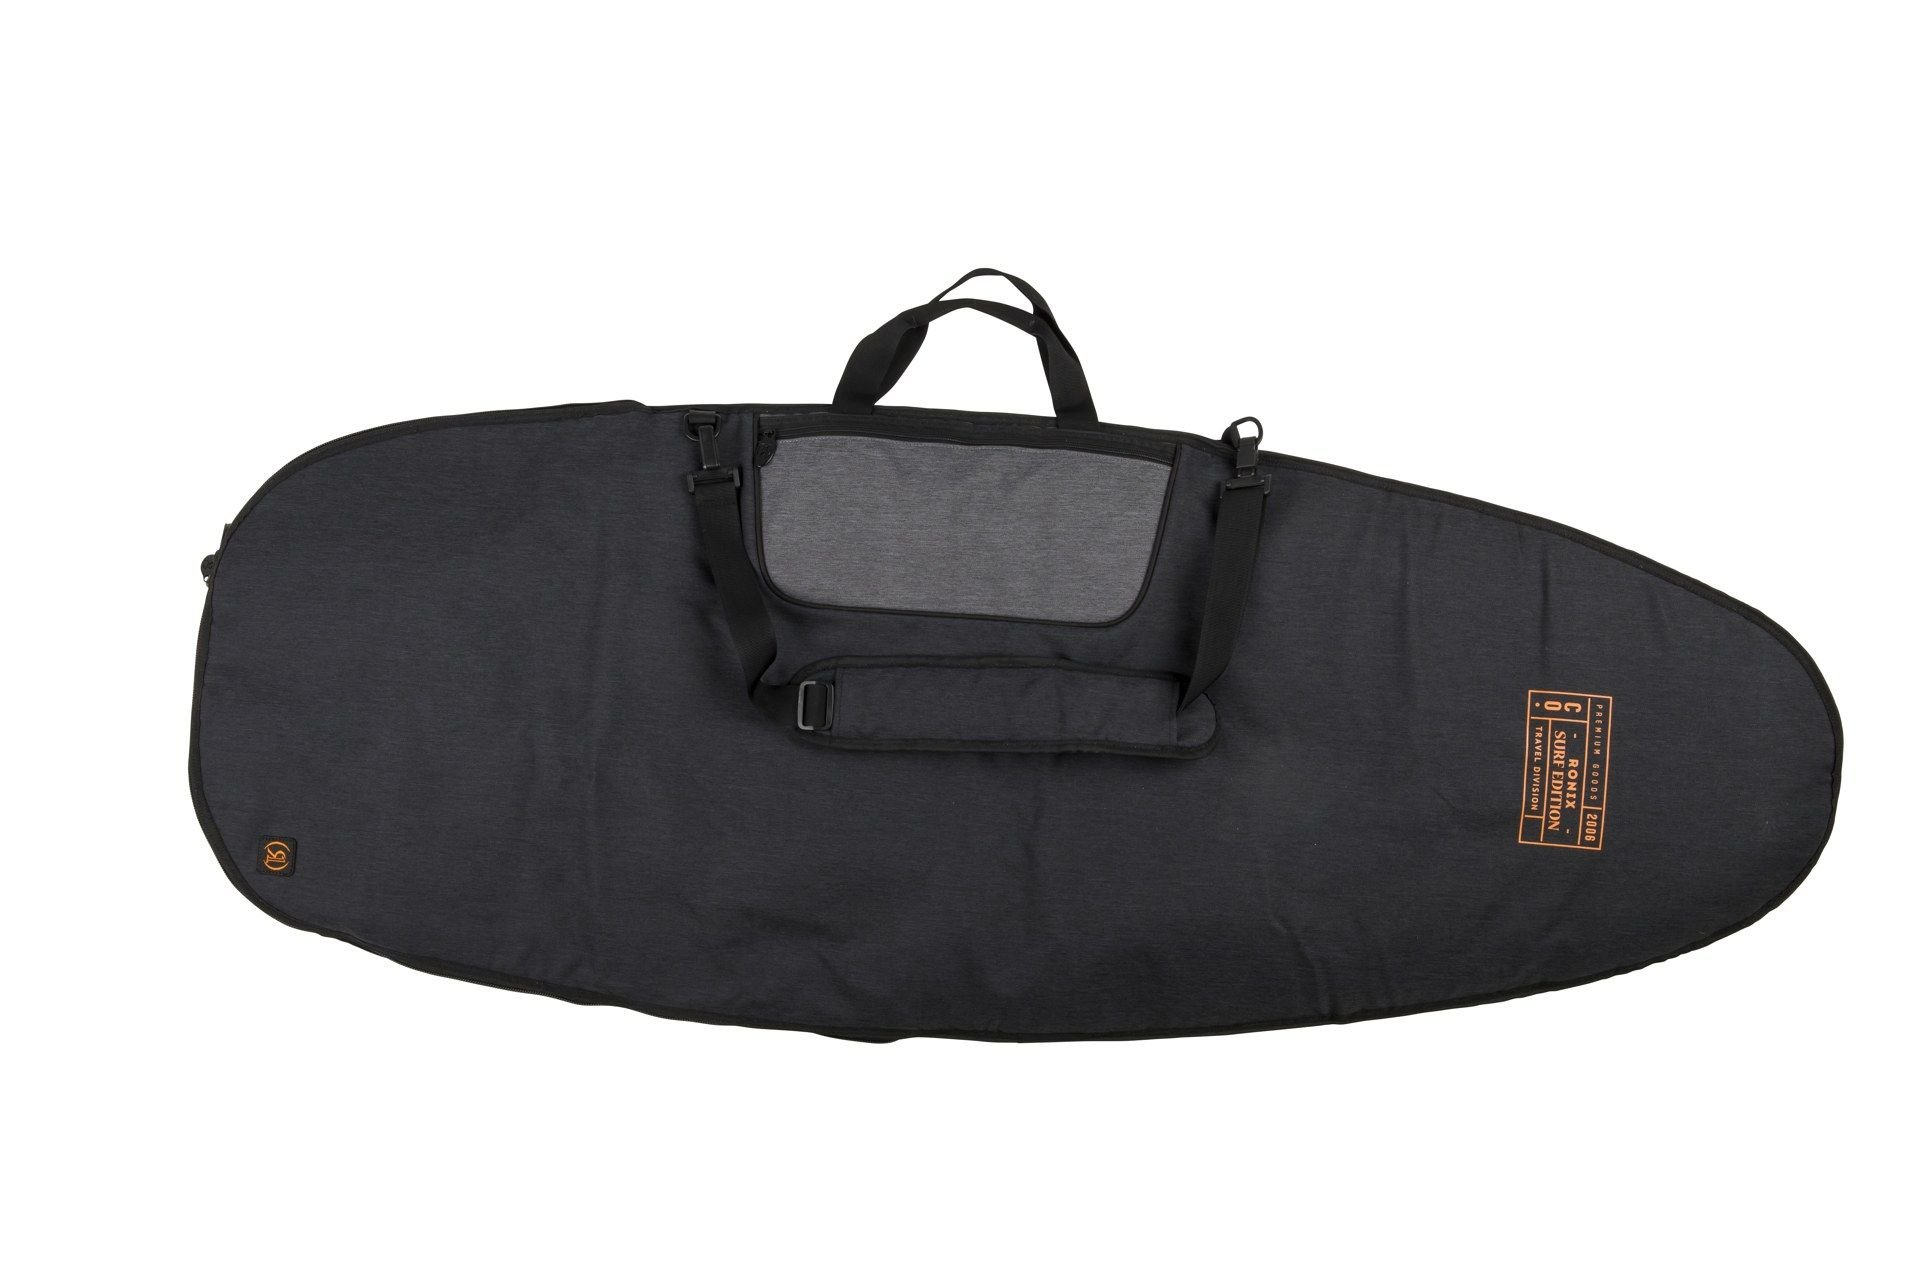 Ronix Dempsey Surf Case w/ 3D Fin Box - Up to 5'9